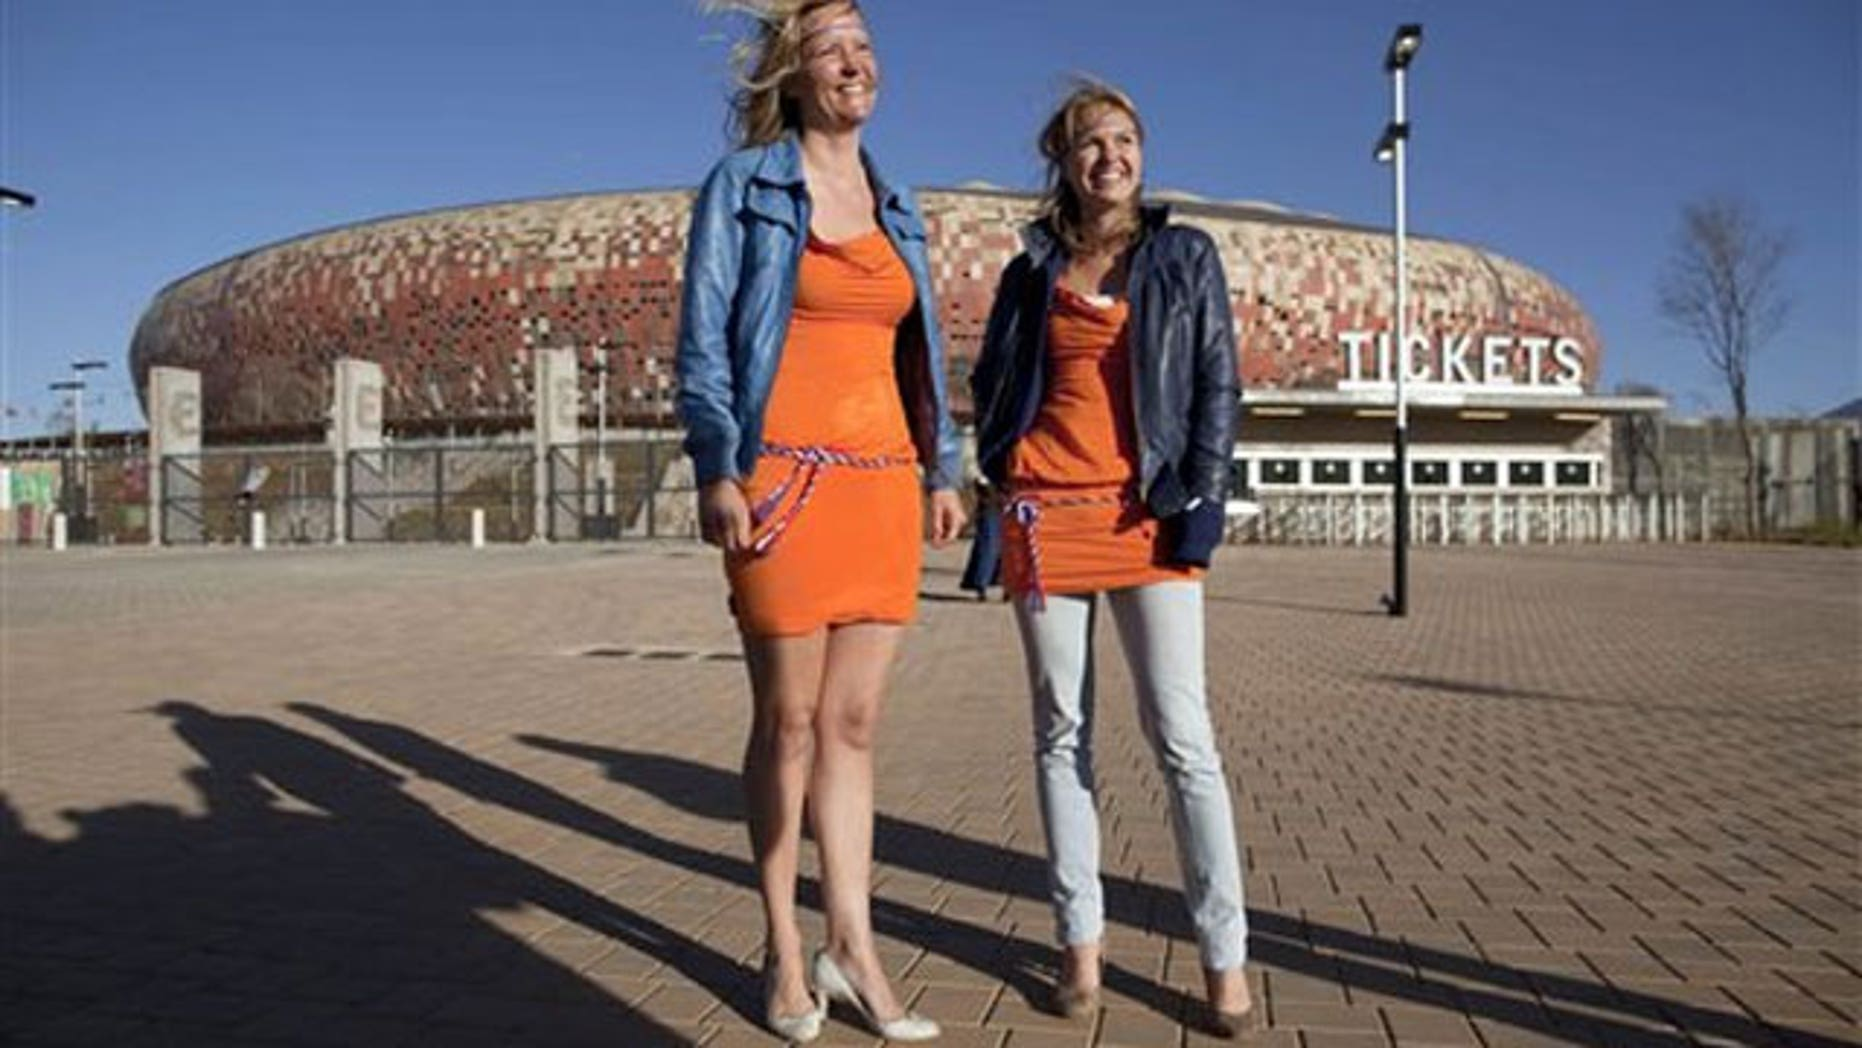 June 15: Barbara Castelein, left, and Mierte, both from the Netherlands, outside the Soccer City stadium in Johannesburg, where they were arrested for wearing orange mini-dresses that are the symbol of a beer advertising campaign in the Netherlands.